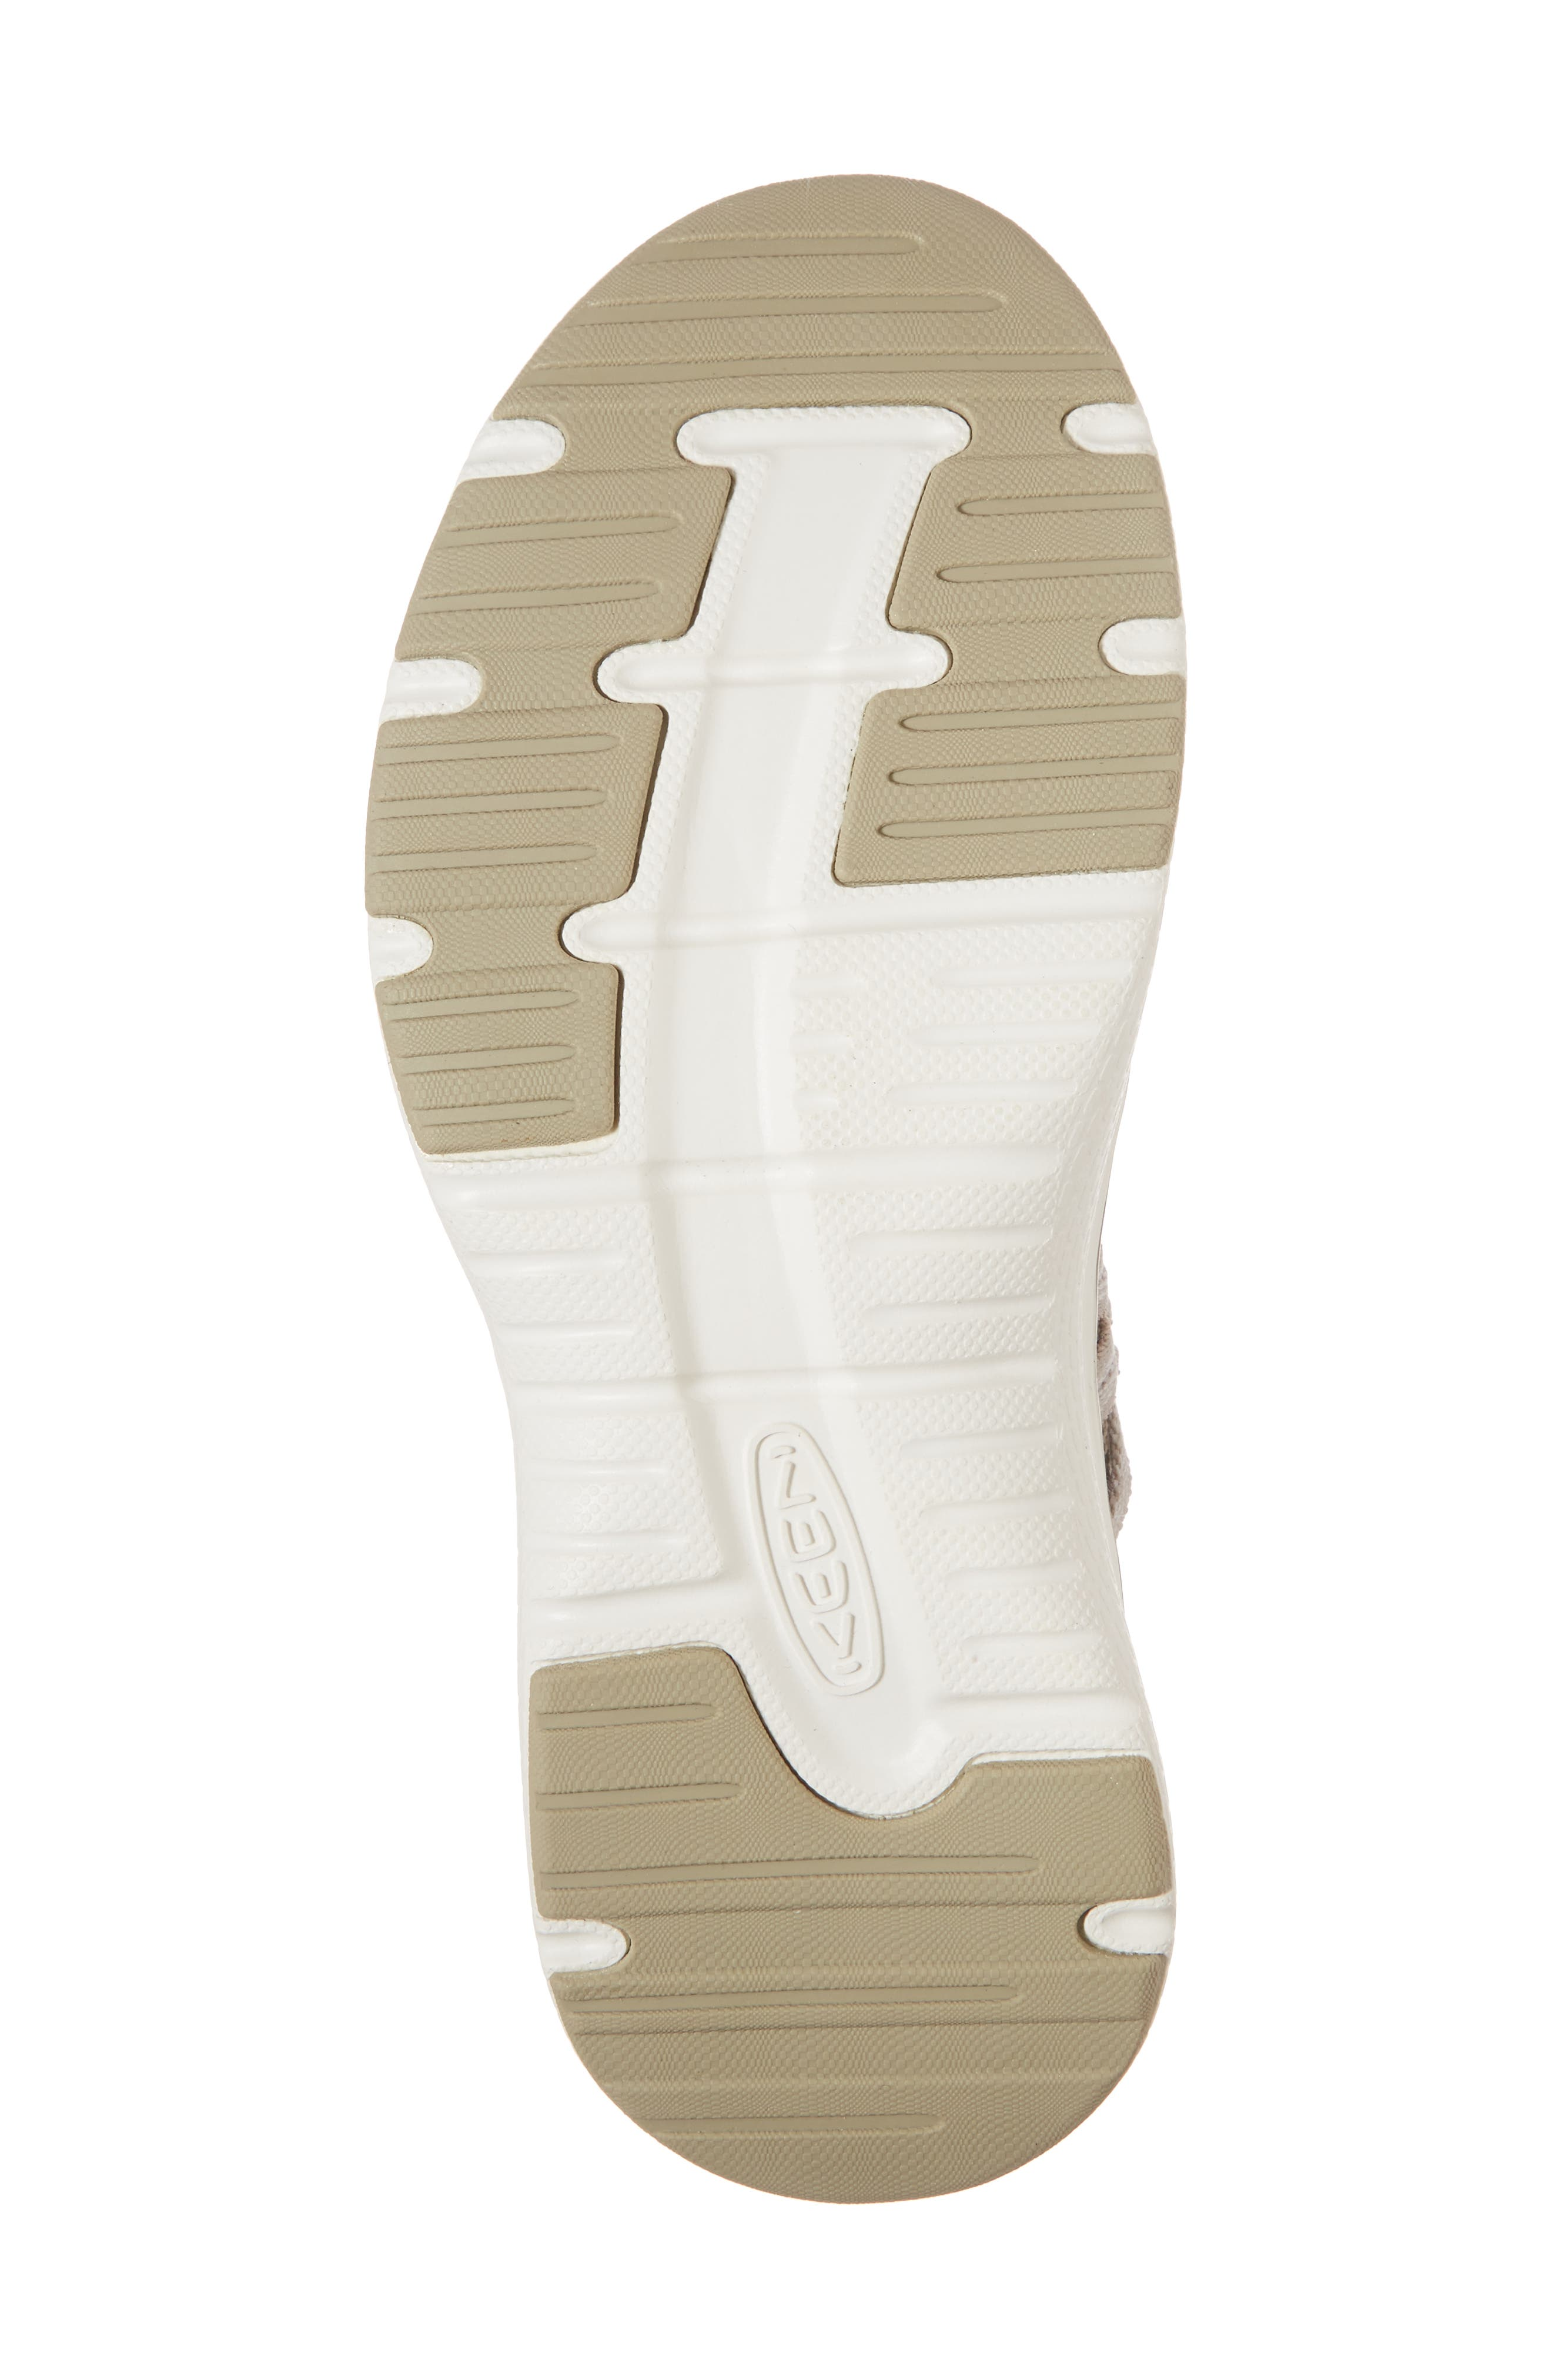 Uneek Exo Water Sneaker,                             Alternate thumbnail 6, color,                             Plaza Taupe